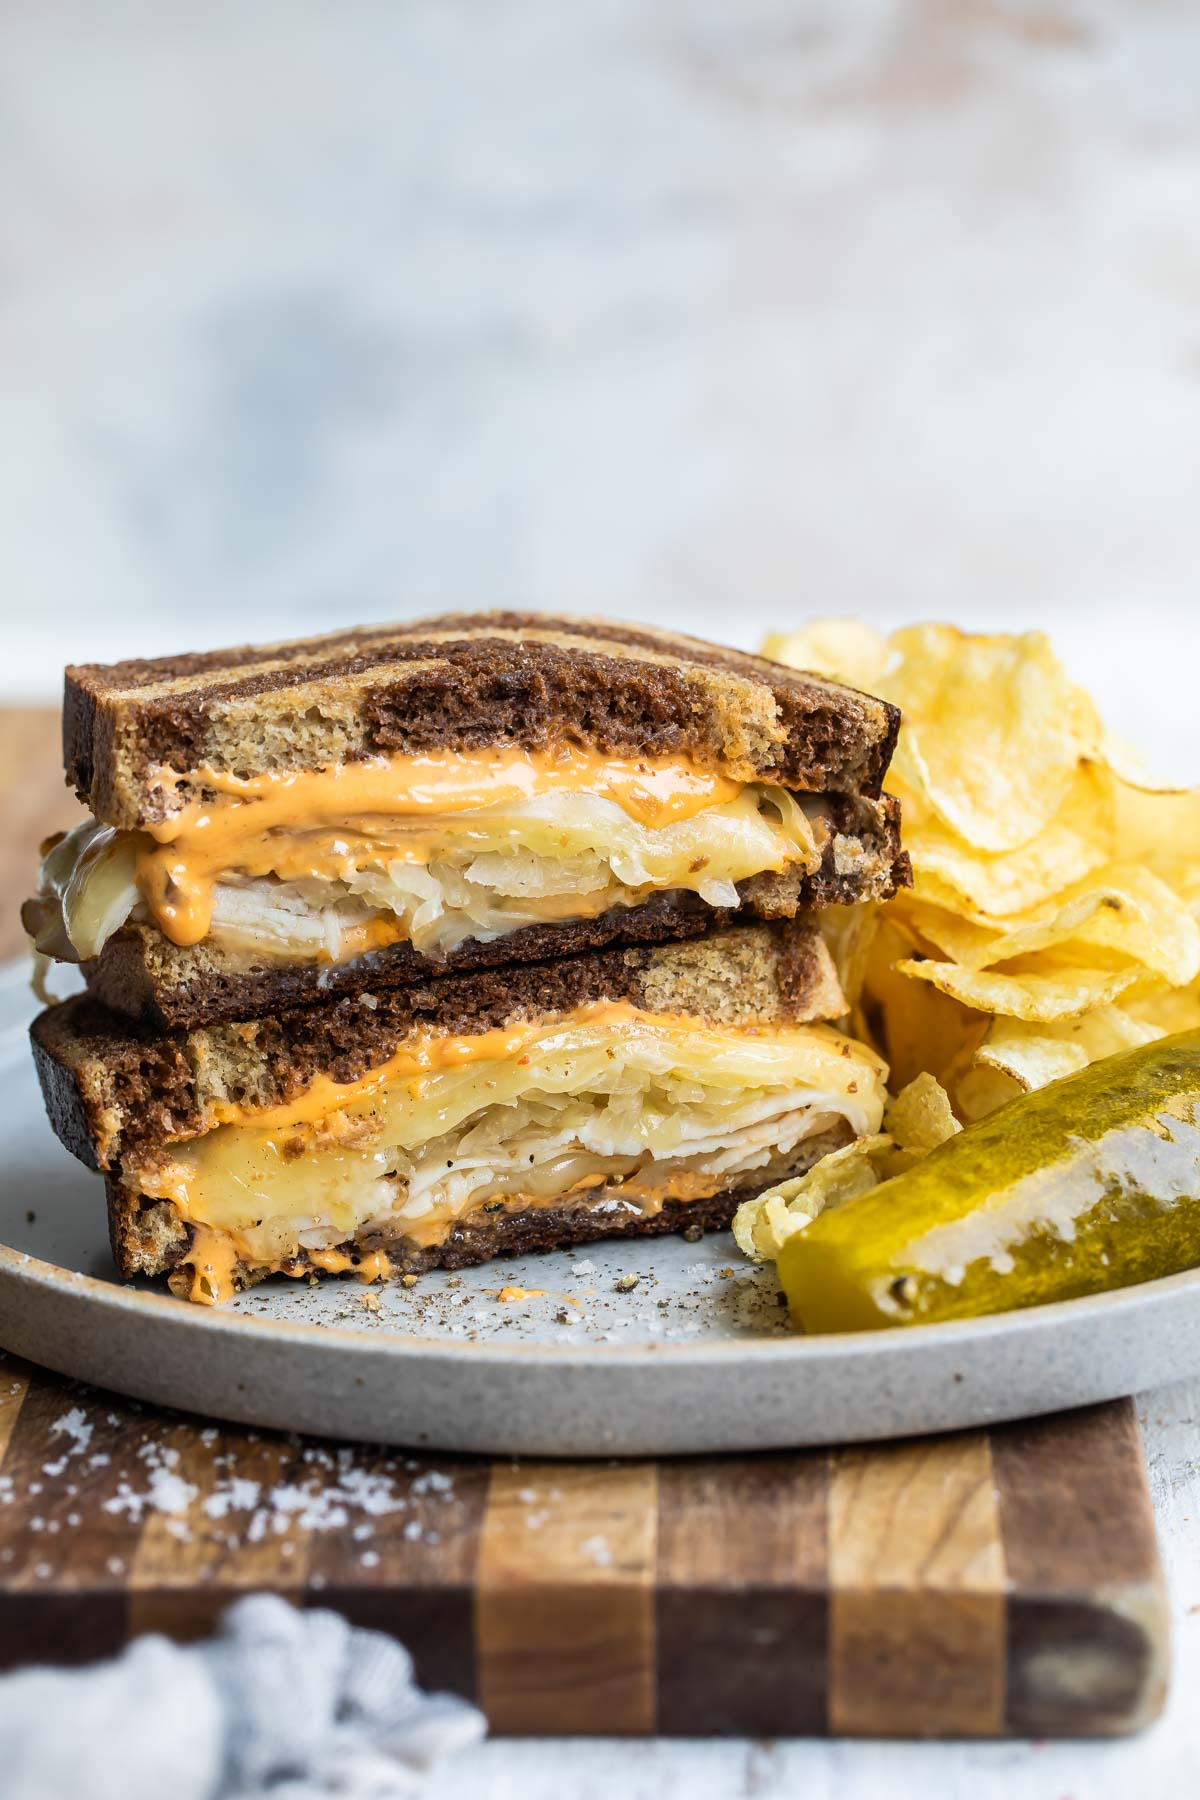 A rachel sandwich on a gray plate with a pickle spear and potato chips.